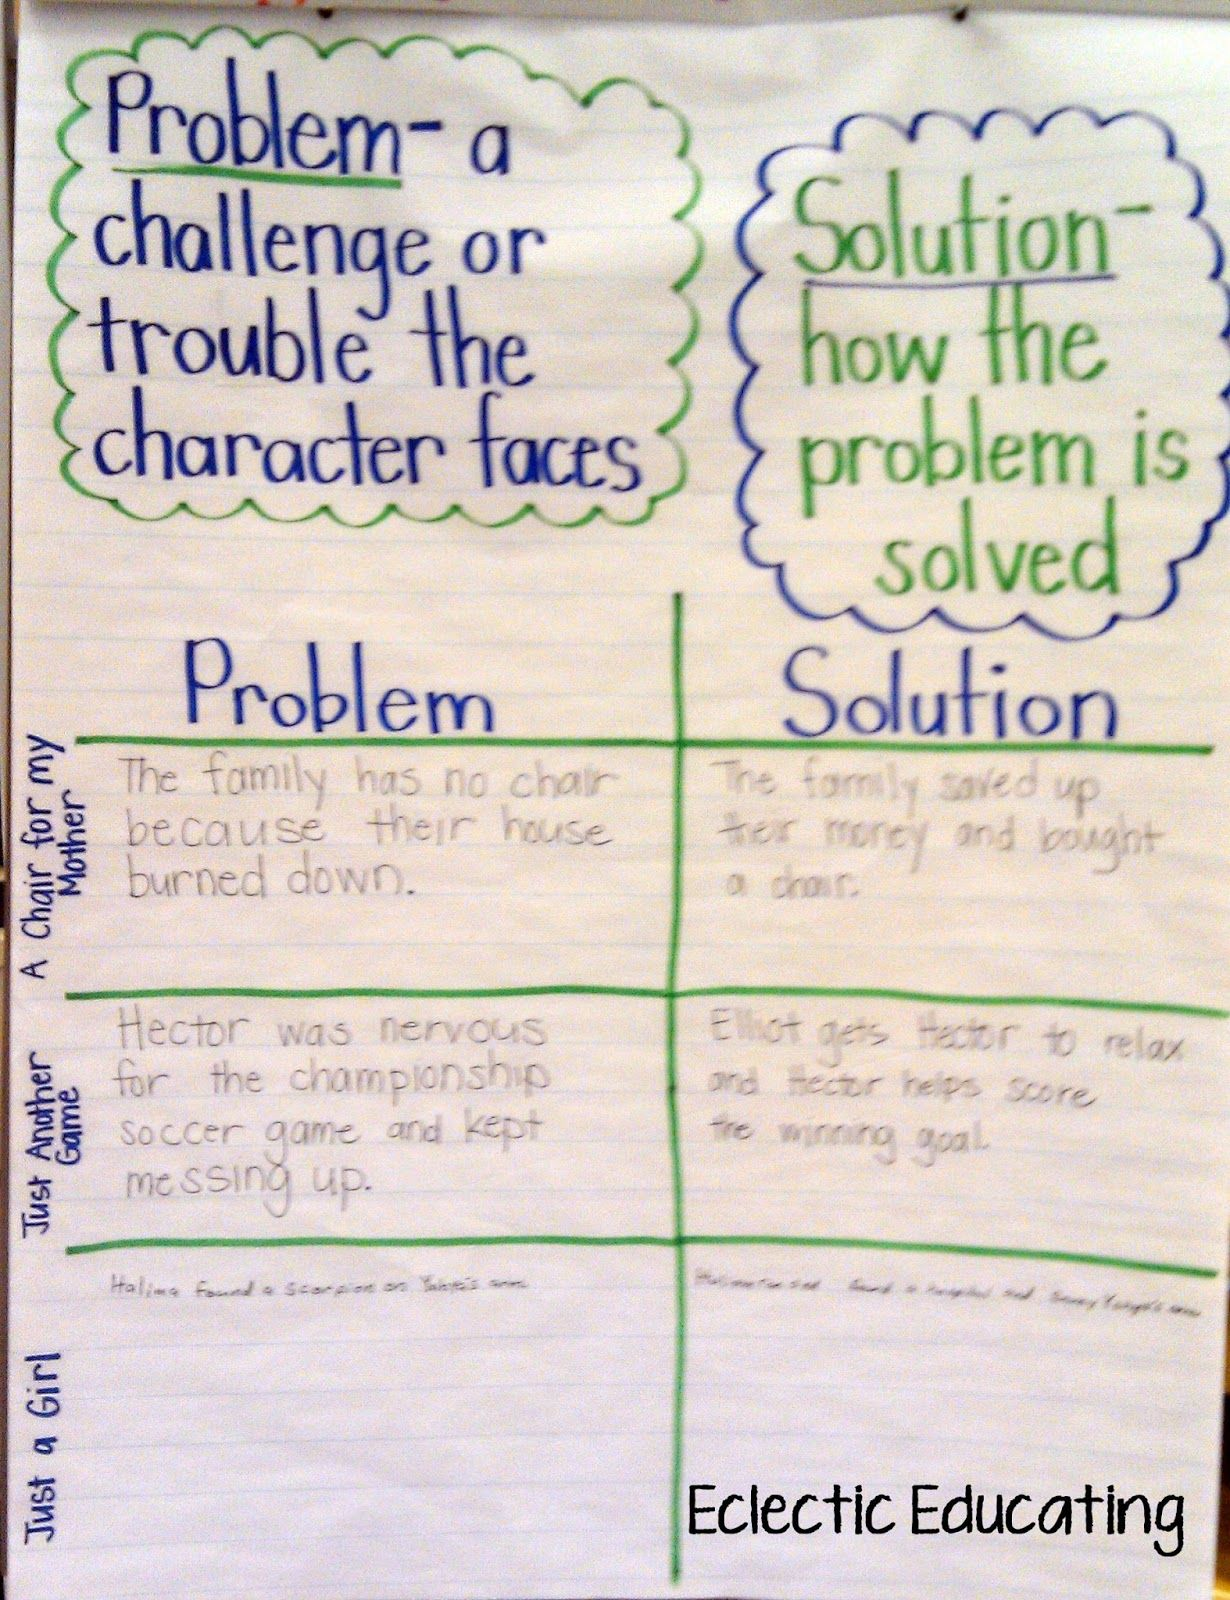 small resolution of Eclectic Educating: Problem and Solution   Problem and solution